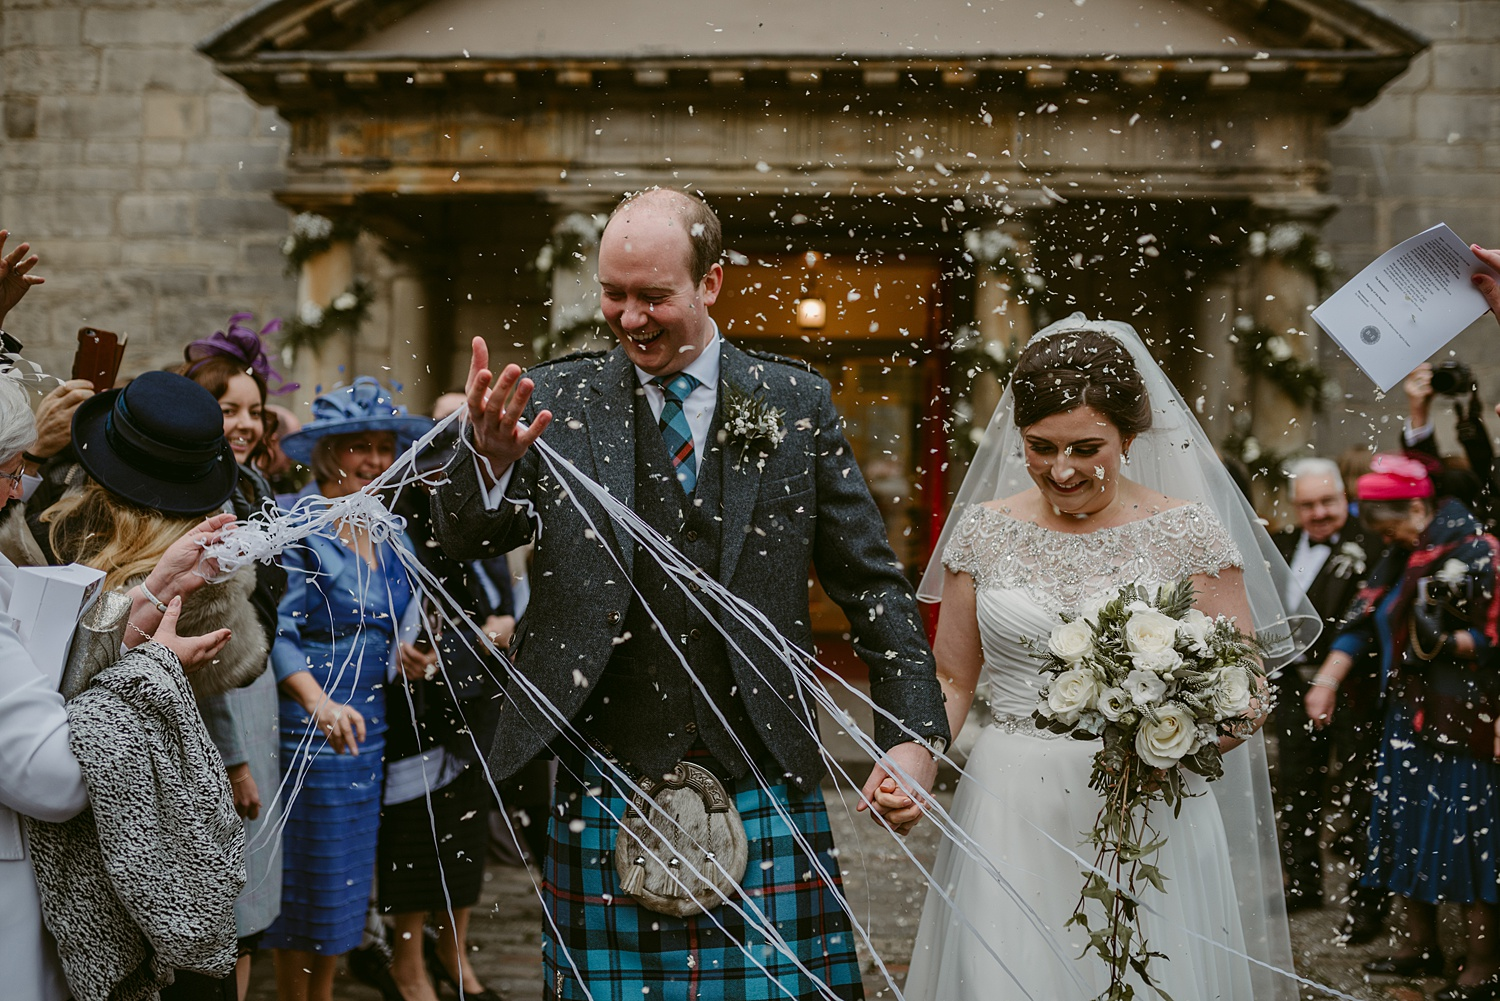 Claire-Fleck-Scottish-wedding-photography-2017__0050.jpg